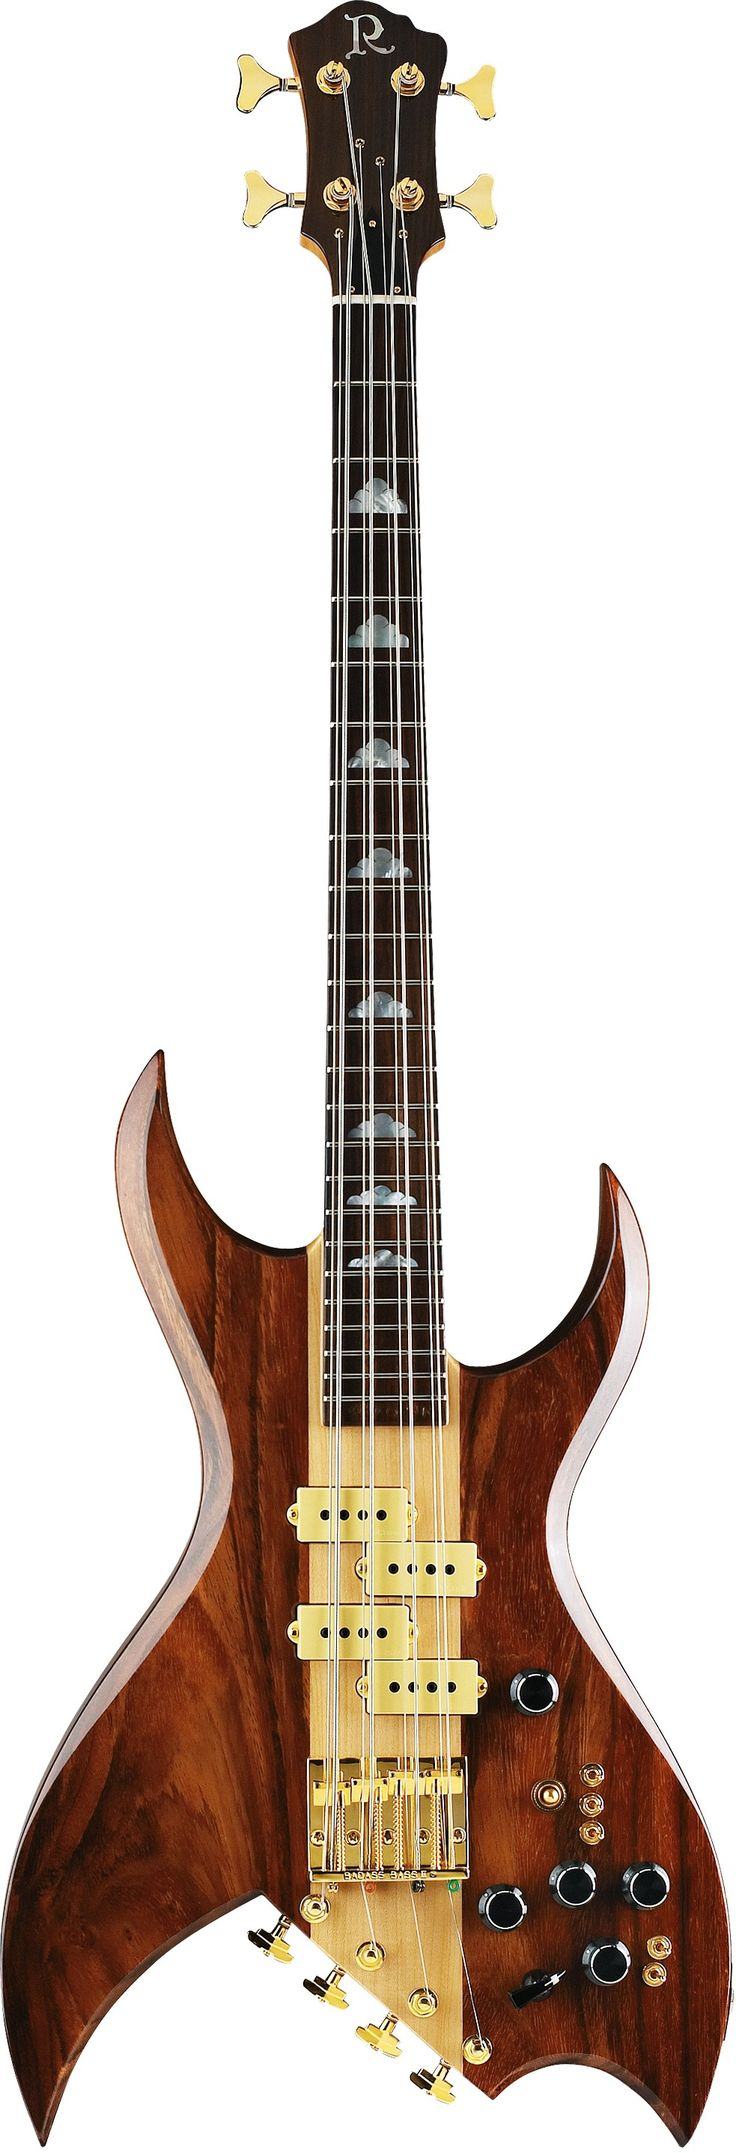 B.C. Rich 8-string bass - enlarge to see how 4 small tuners work. RESEARCH…